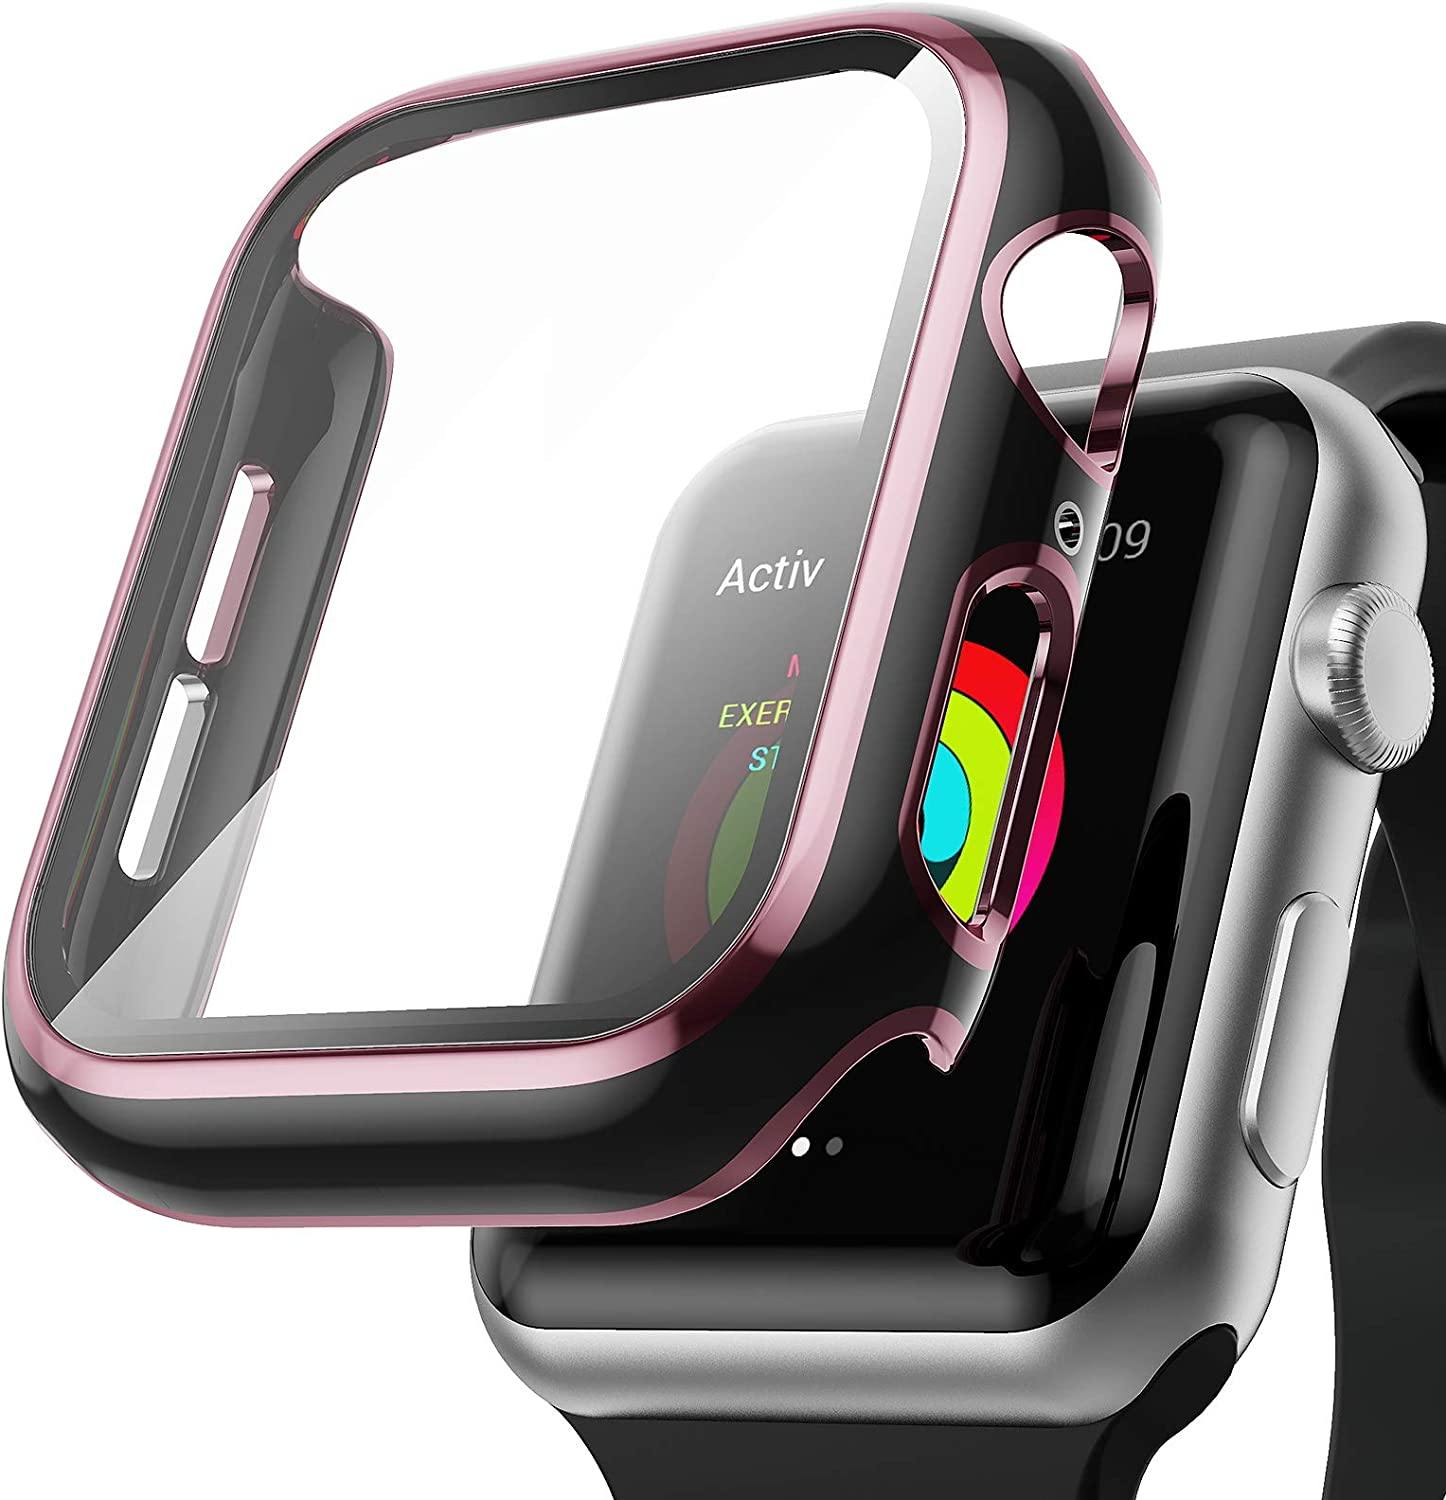 AISIBY Case Compatible with Apple Watch Series 3/2/1 42mm with Built-in Tempered Glass Screen Protector,Rose Pink Edge Black Bumper Full Coverage HD Clear Protective Film Cover for Women Men